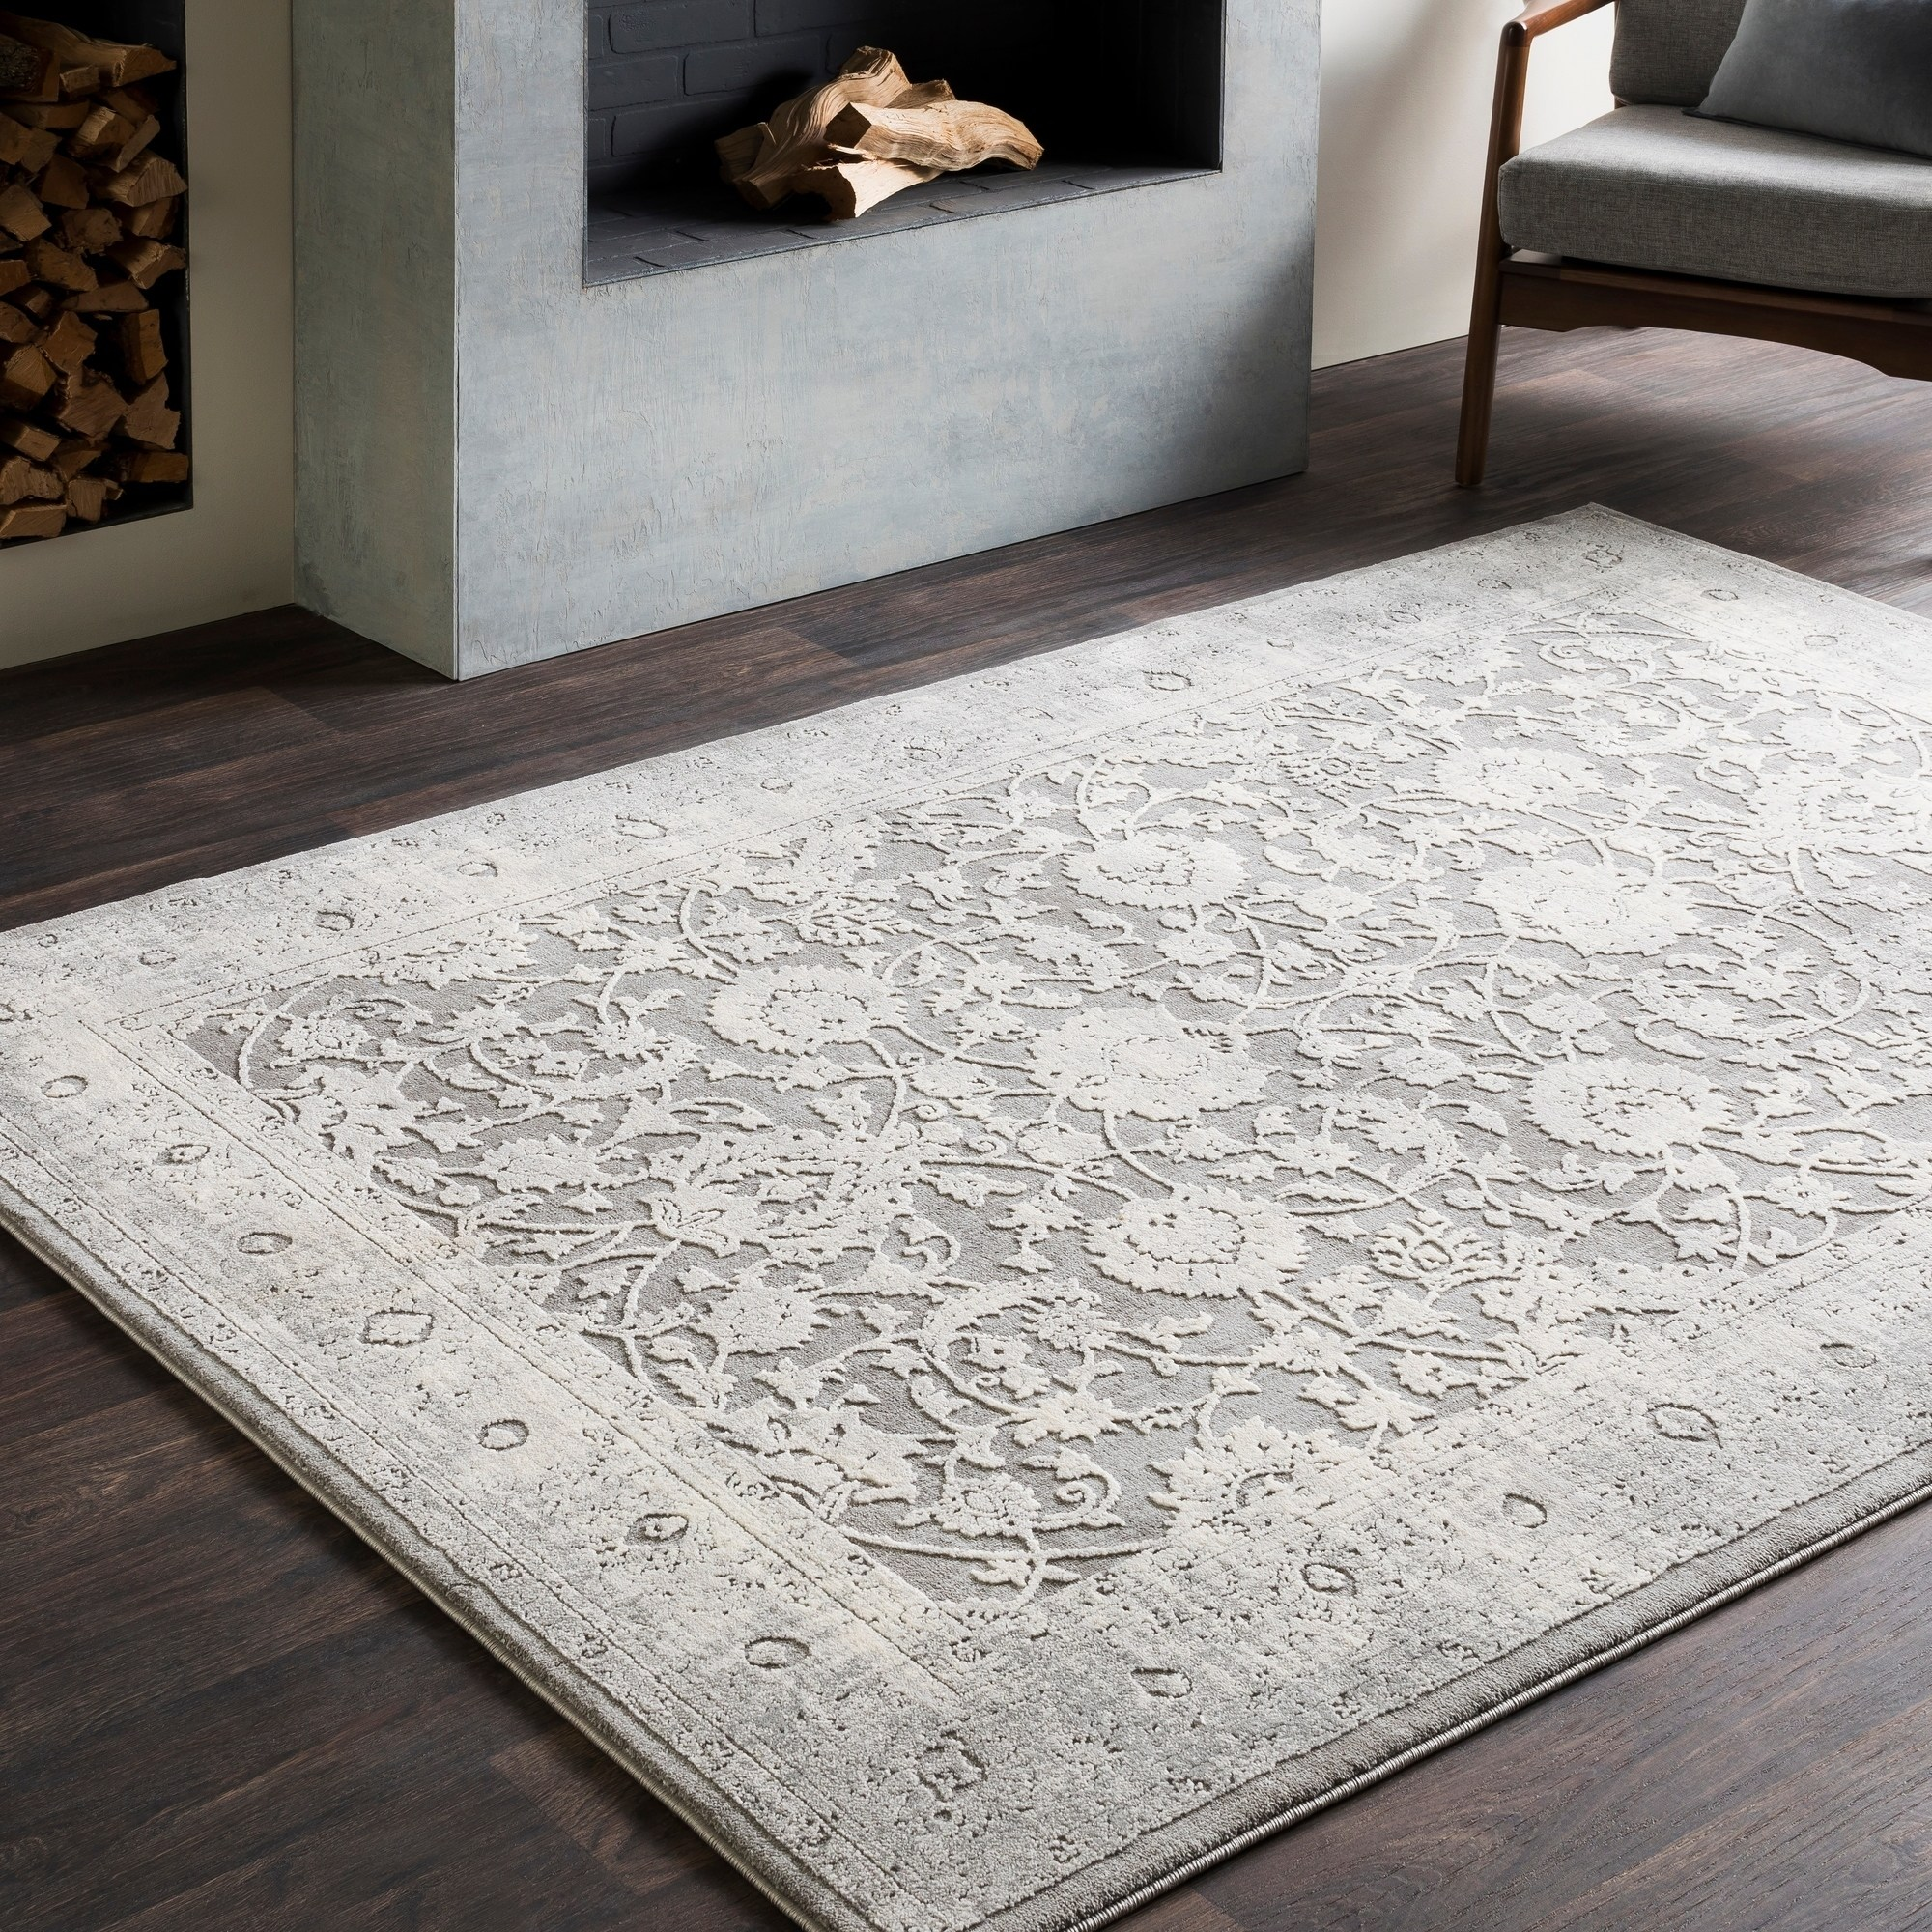 Lindsey Stonewashed Vintage Runner 2 7 X 10 Runner 2 7 X 10 Runner Grey Polyester Oriental Products In 2019 Area Rugs Rugs Gray Runner Rug